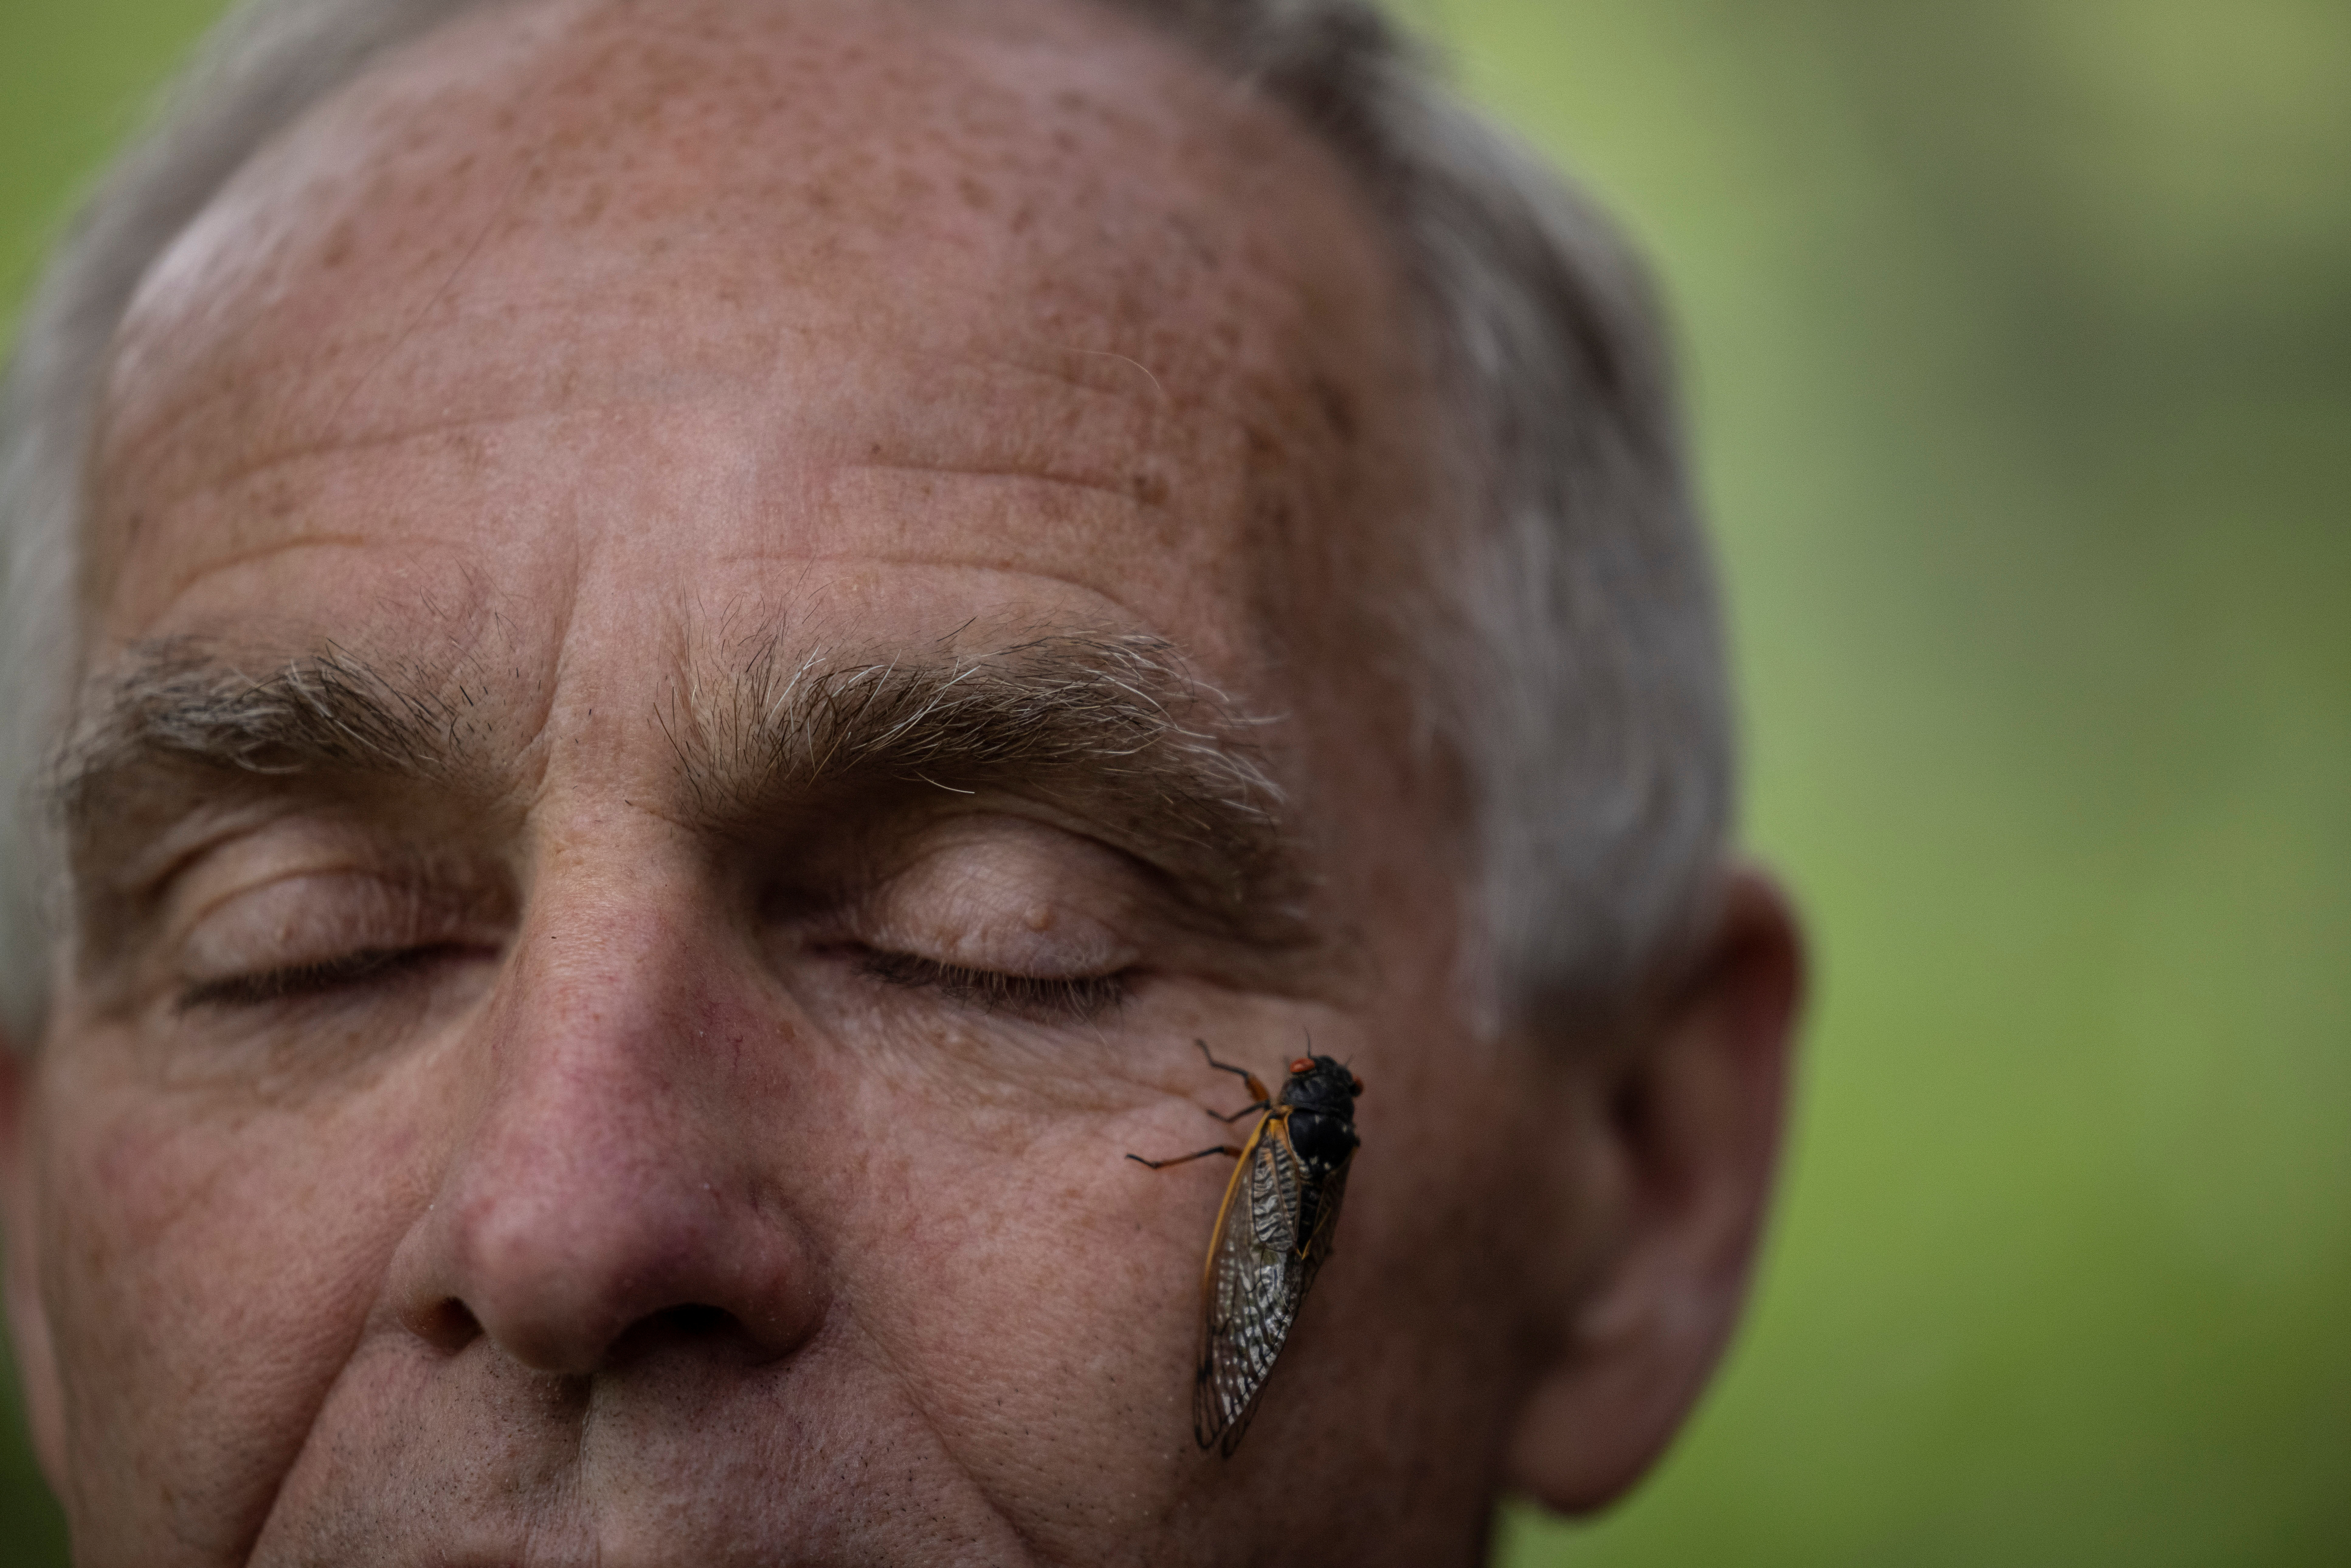 A newly emerged adult cicada stands on entomologist Michael Raupp's face, at the university of Maryland campus in College Park, Maryland U.S., May 14, 2021.